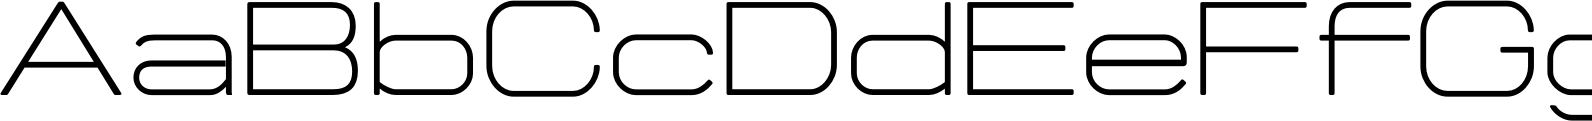 Manifold CF Extended Light Font